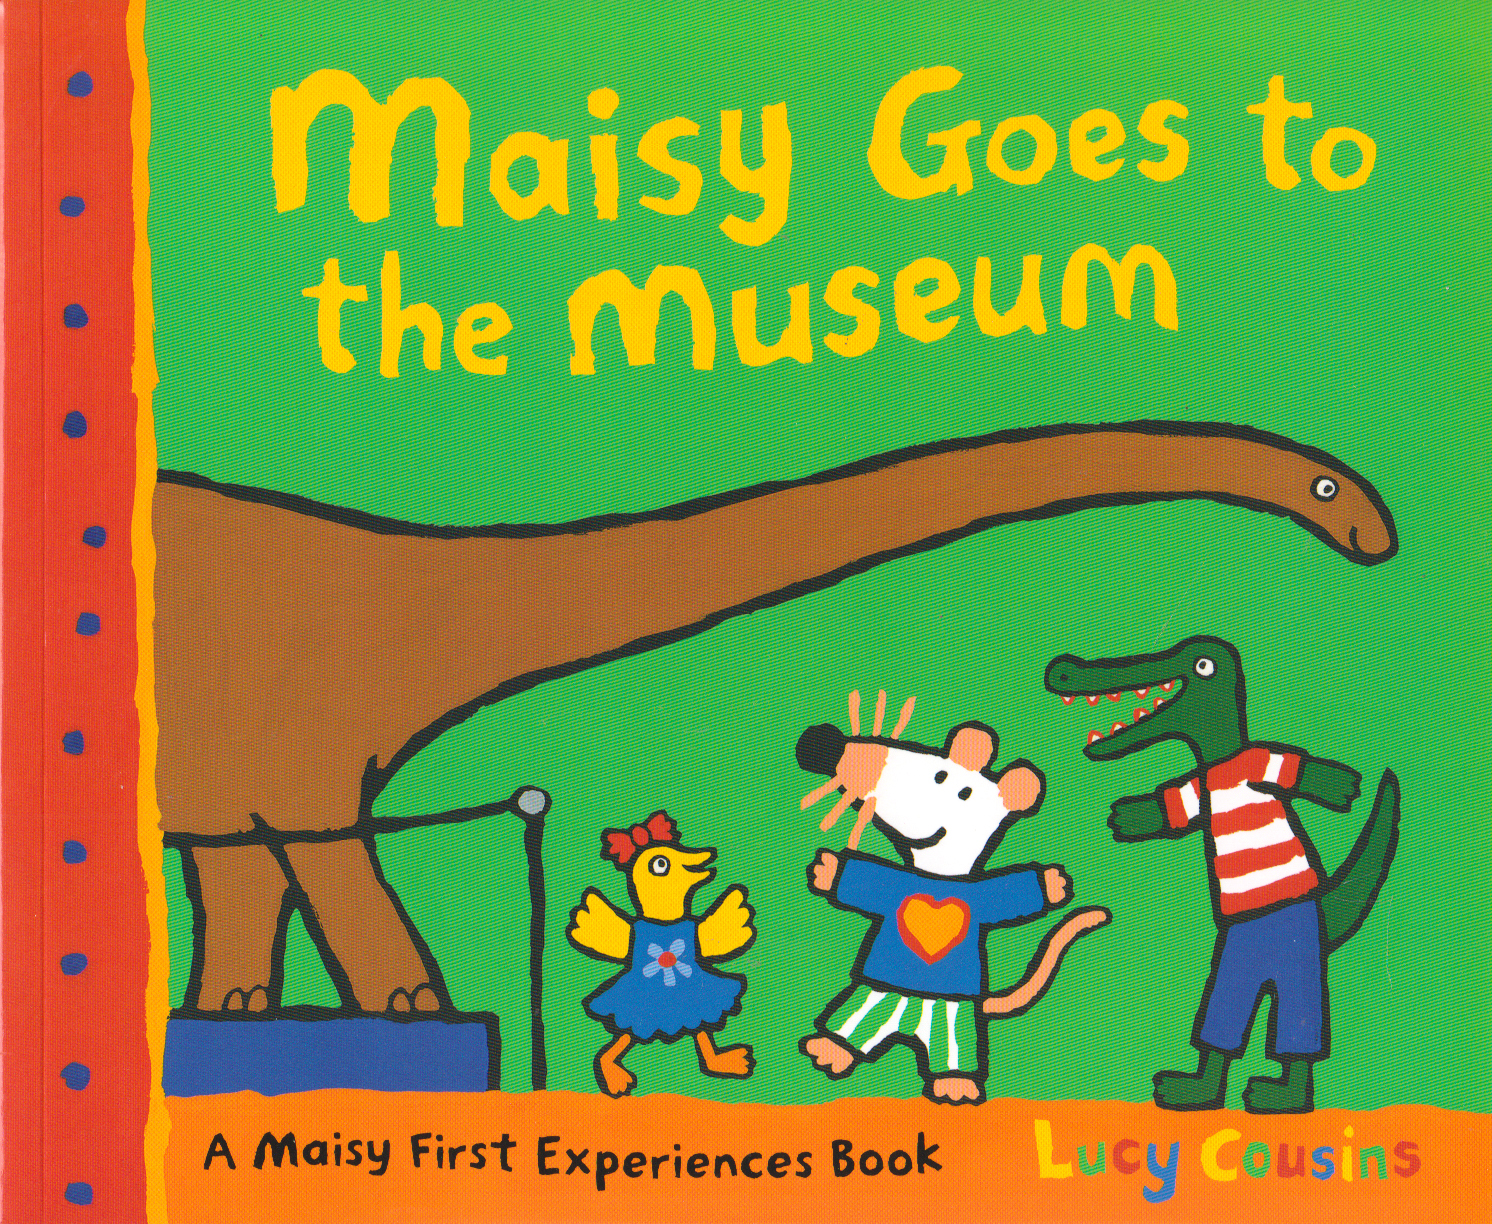 Maisy Goes to the Museum – 9781406344592 [C1]